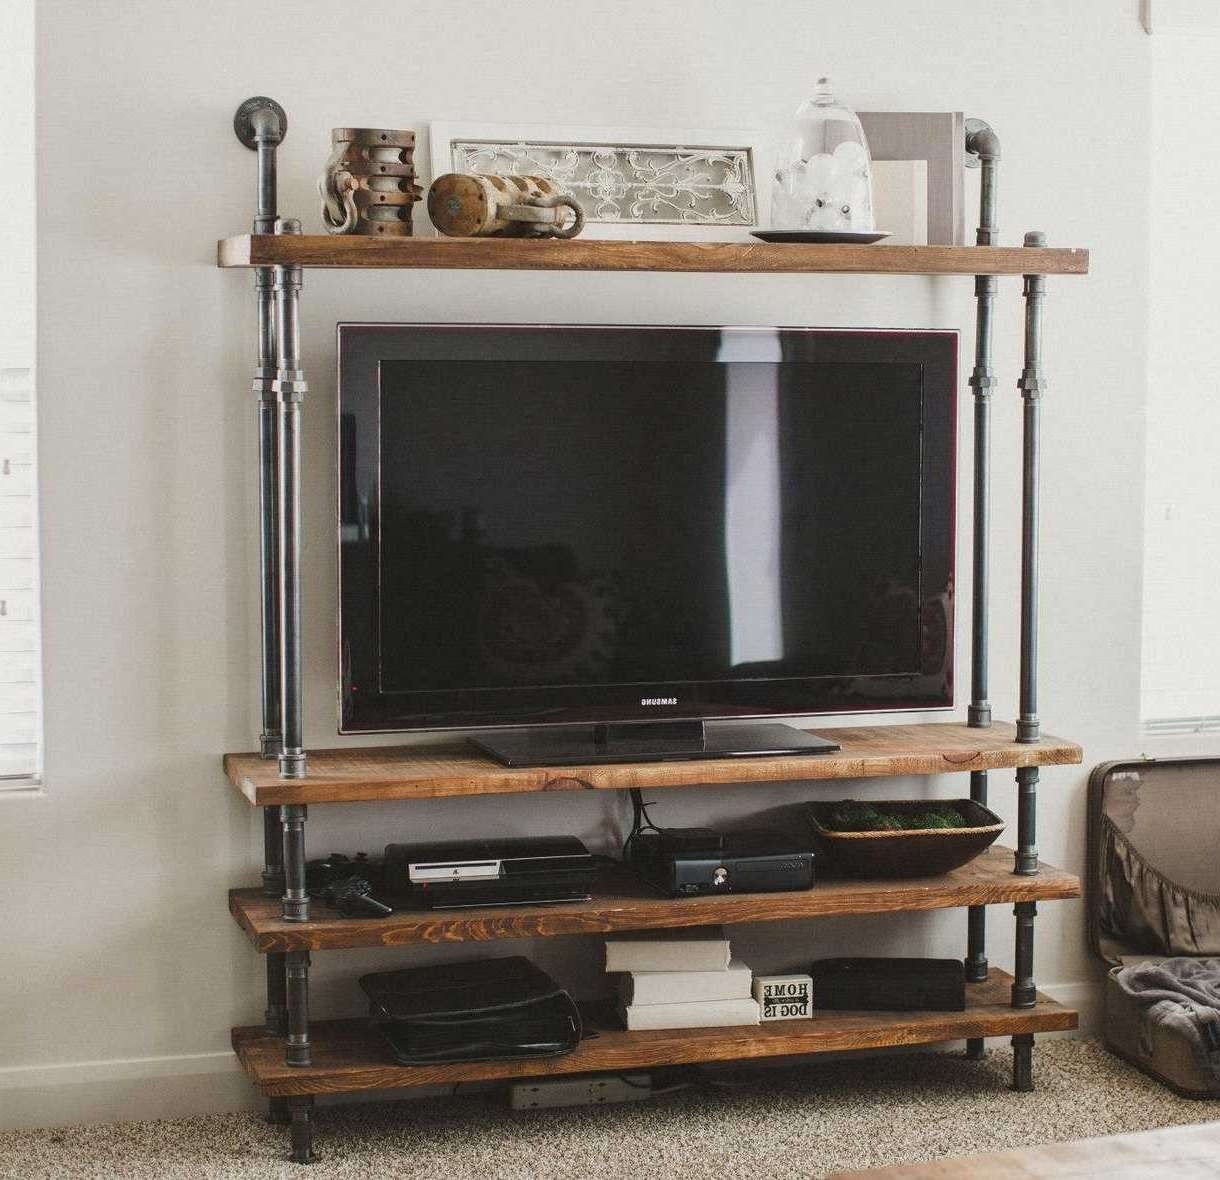 Cool Tv Stand, How To Choose A Tv Stand Tv Stands, Tvs And Regarding Cool Tv Stands (View 8 of 15)